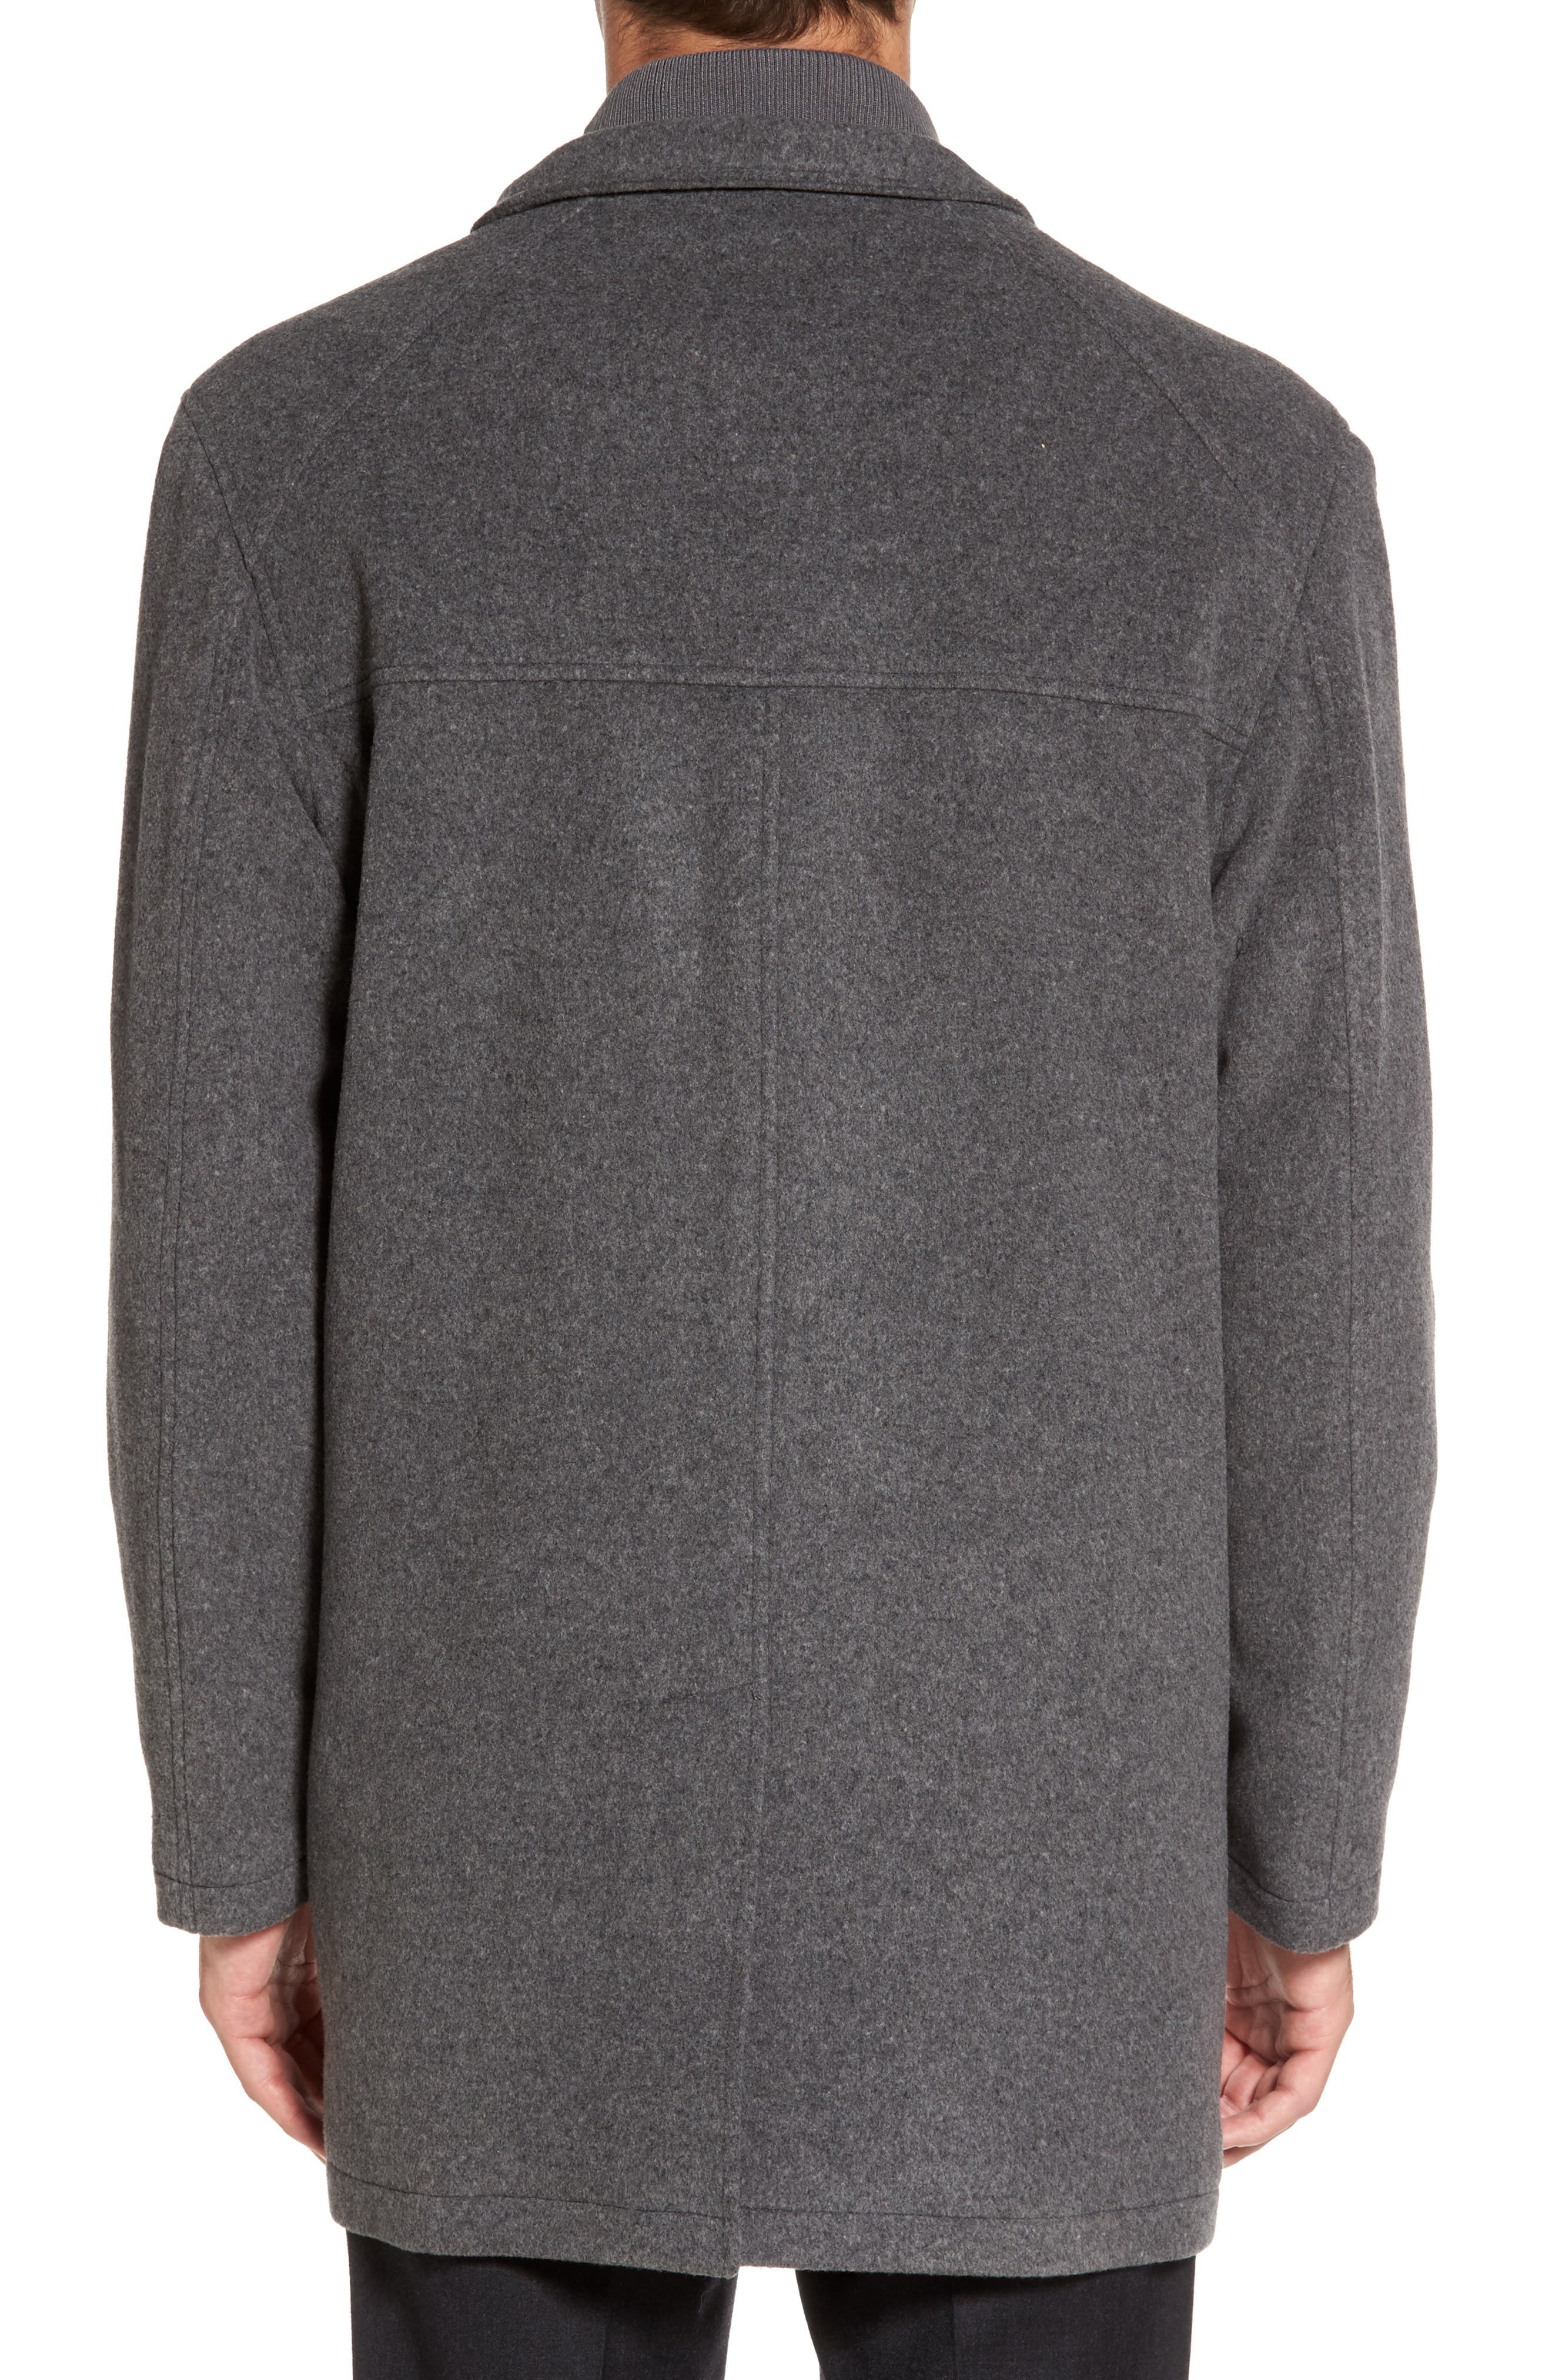 Wool Blend Topcoat with Inset Bib,                             Alternate thumbnail 2, color,                             Light Grey